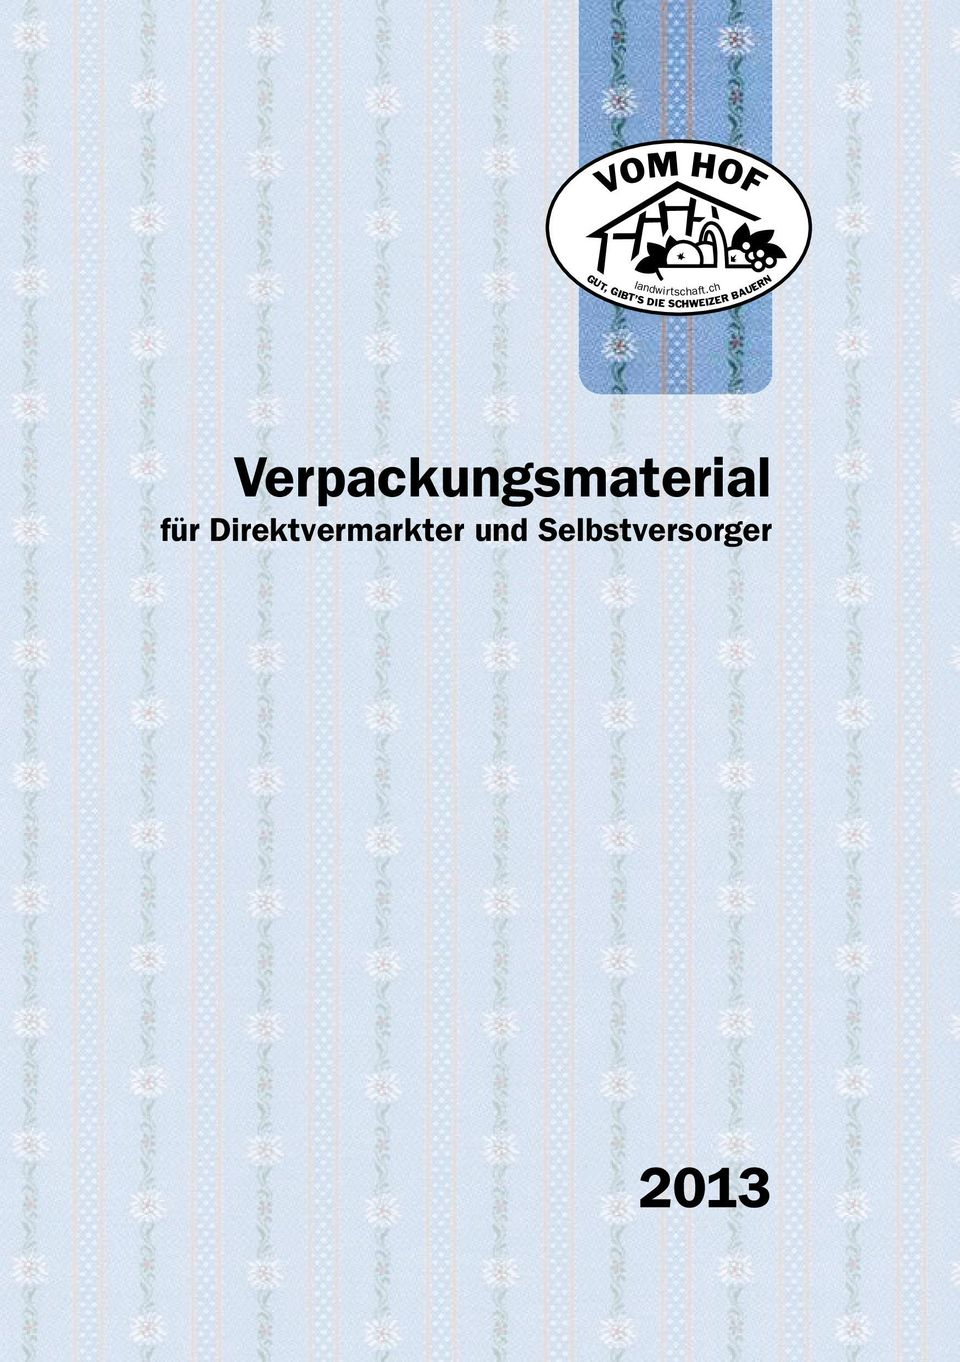 verpackungsmaterial f r direktvermarkter und selbstversorger pdf. Black Bedroom Furniture Sets. Home Design Ideas